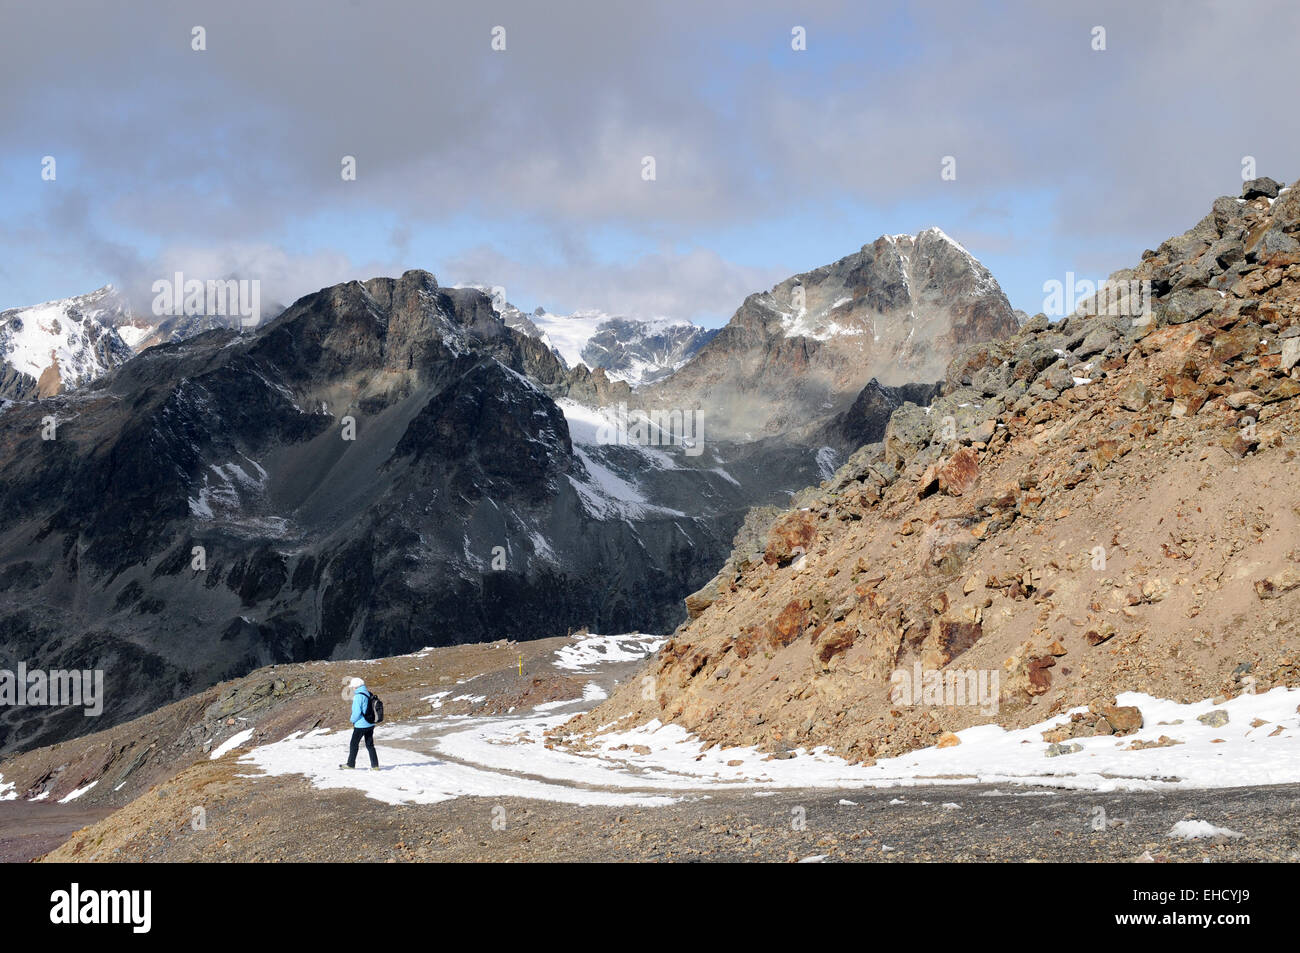 Gebirgslandschaft / Mountains - Stock Image